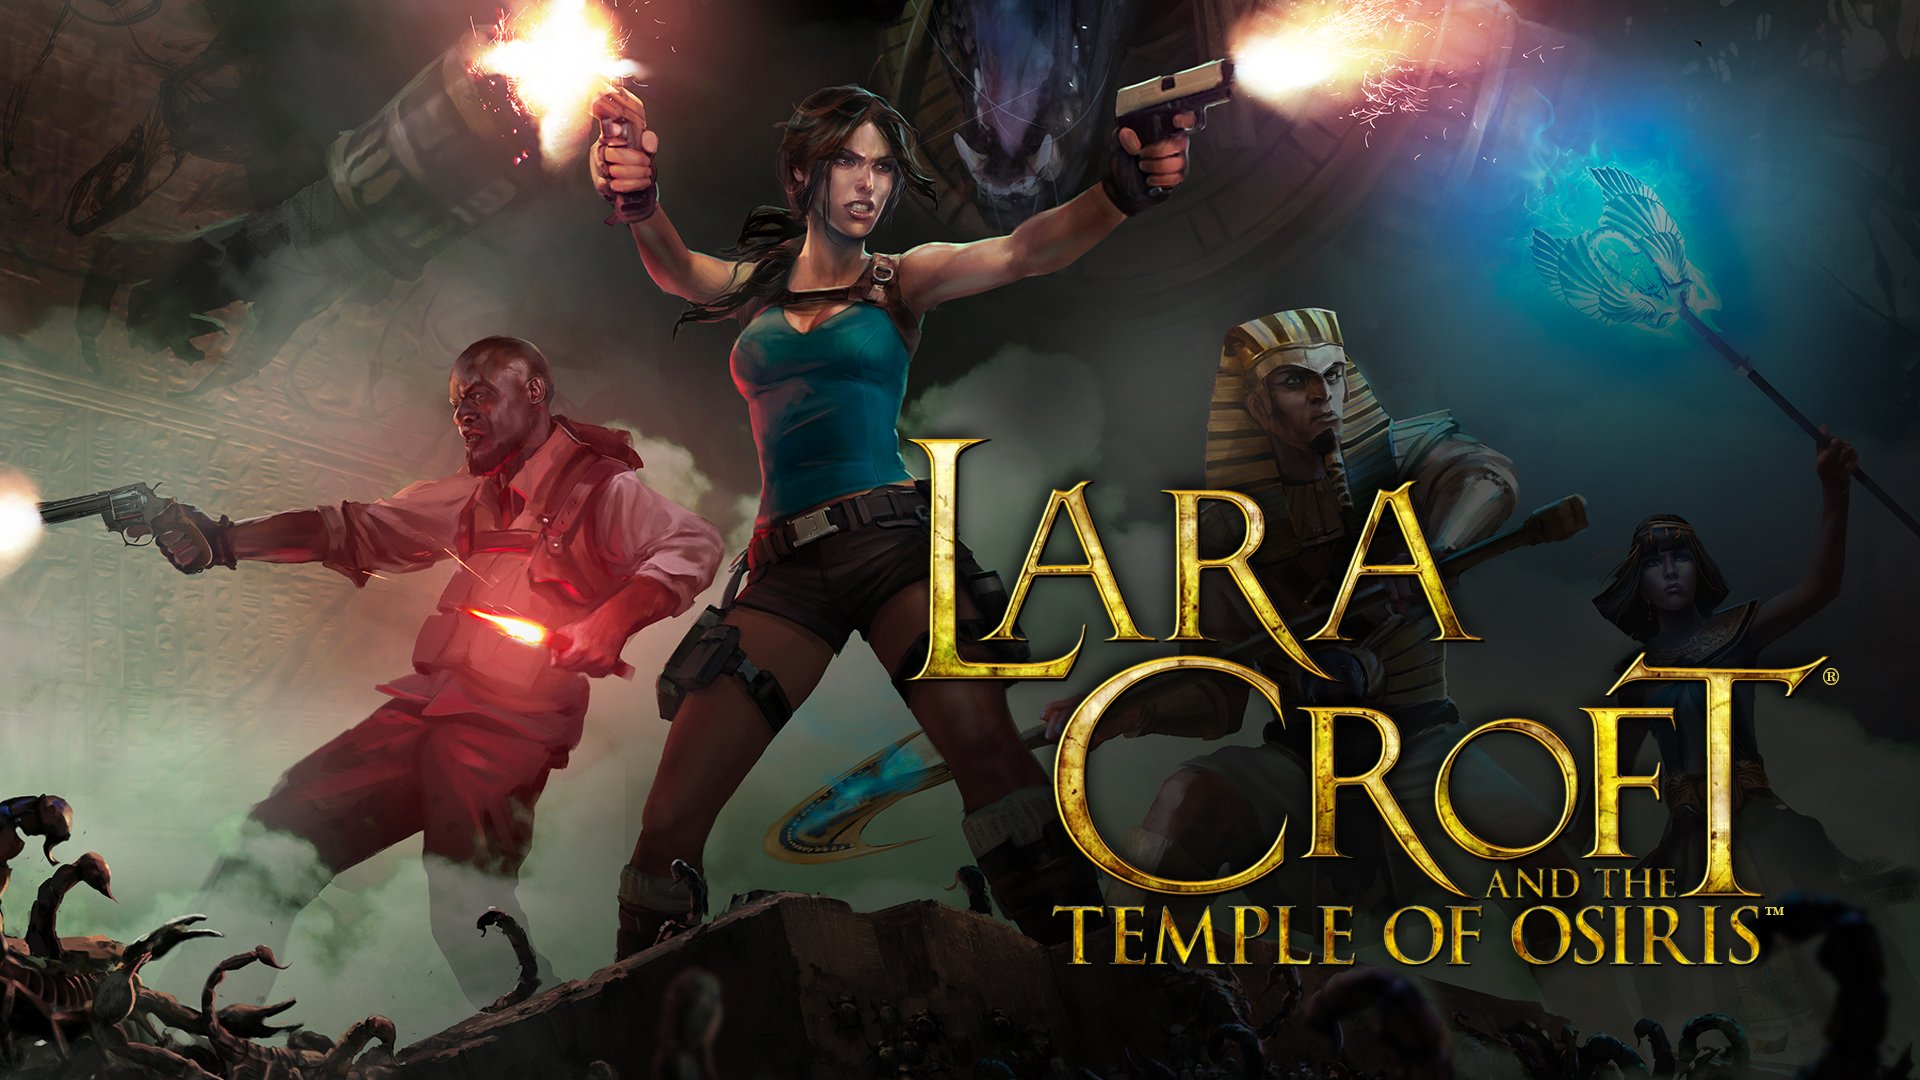 LARA CROFT AND THE TEMPLE OF OSIRIS for free on Steam